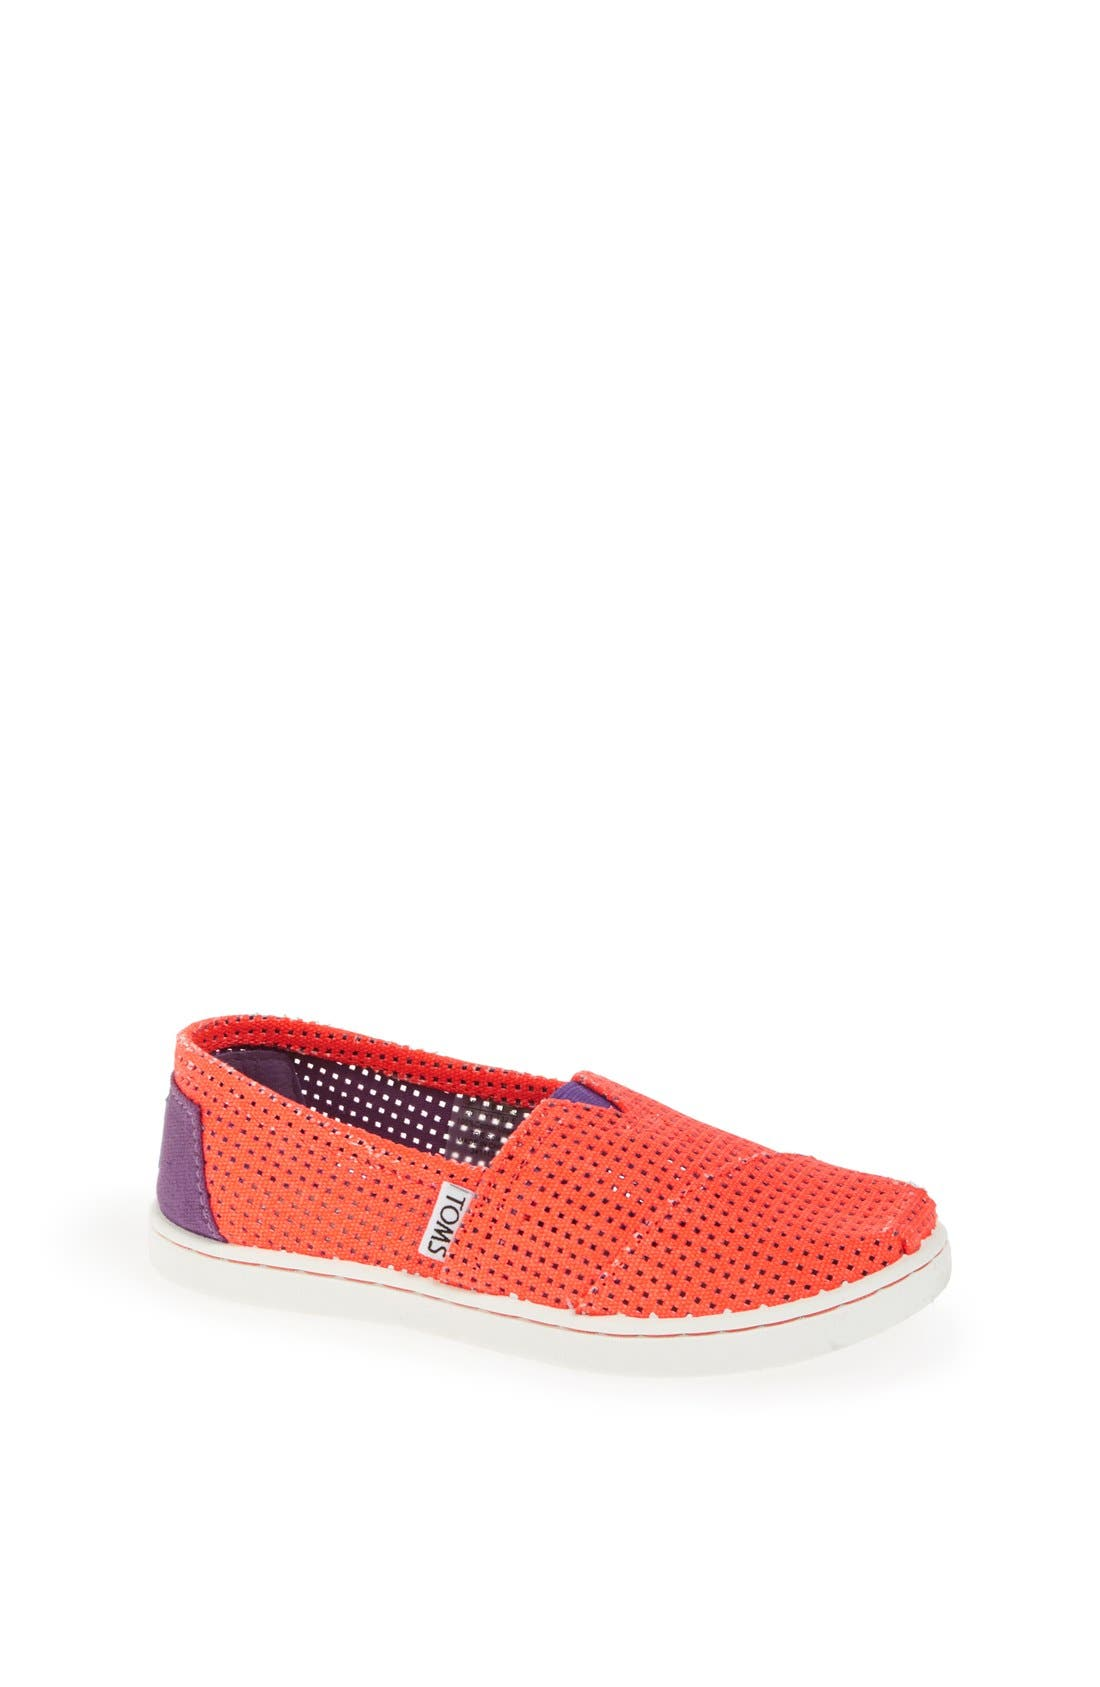 Alternate Image 1 Selected - TOMS 'Freetown' Two-Tone Slip-On (Toddler, Little Kid & Big Kid)